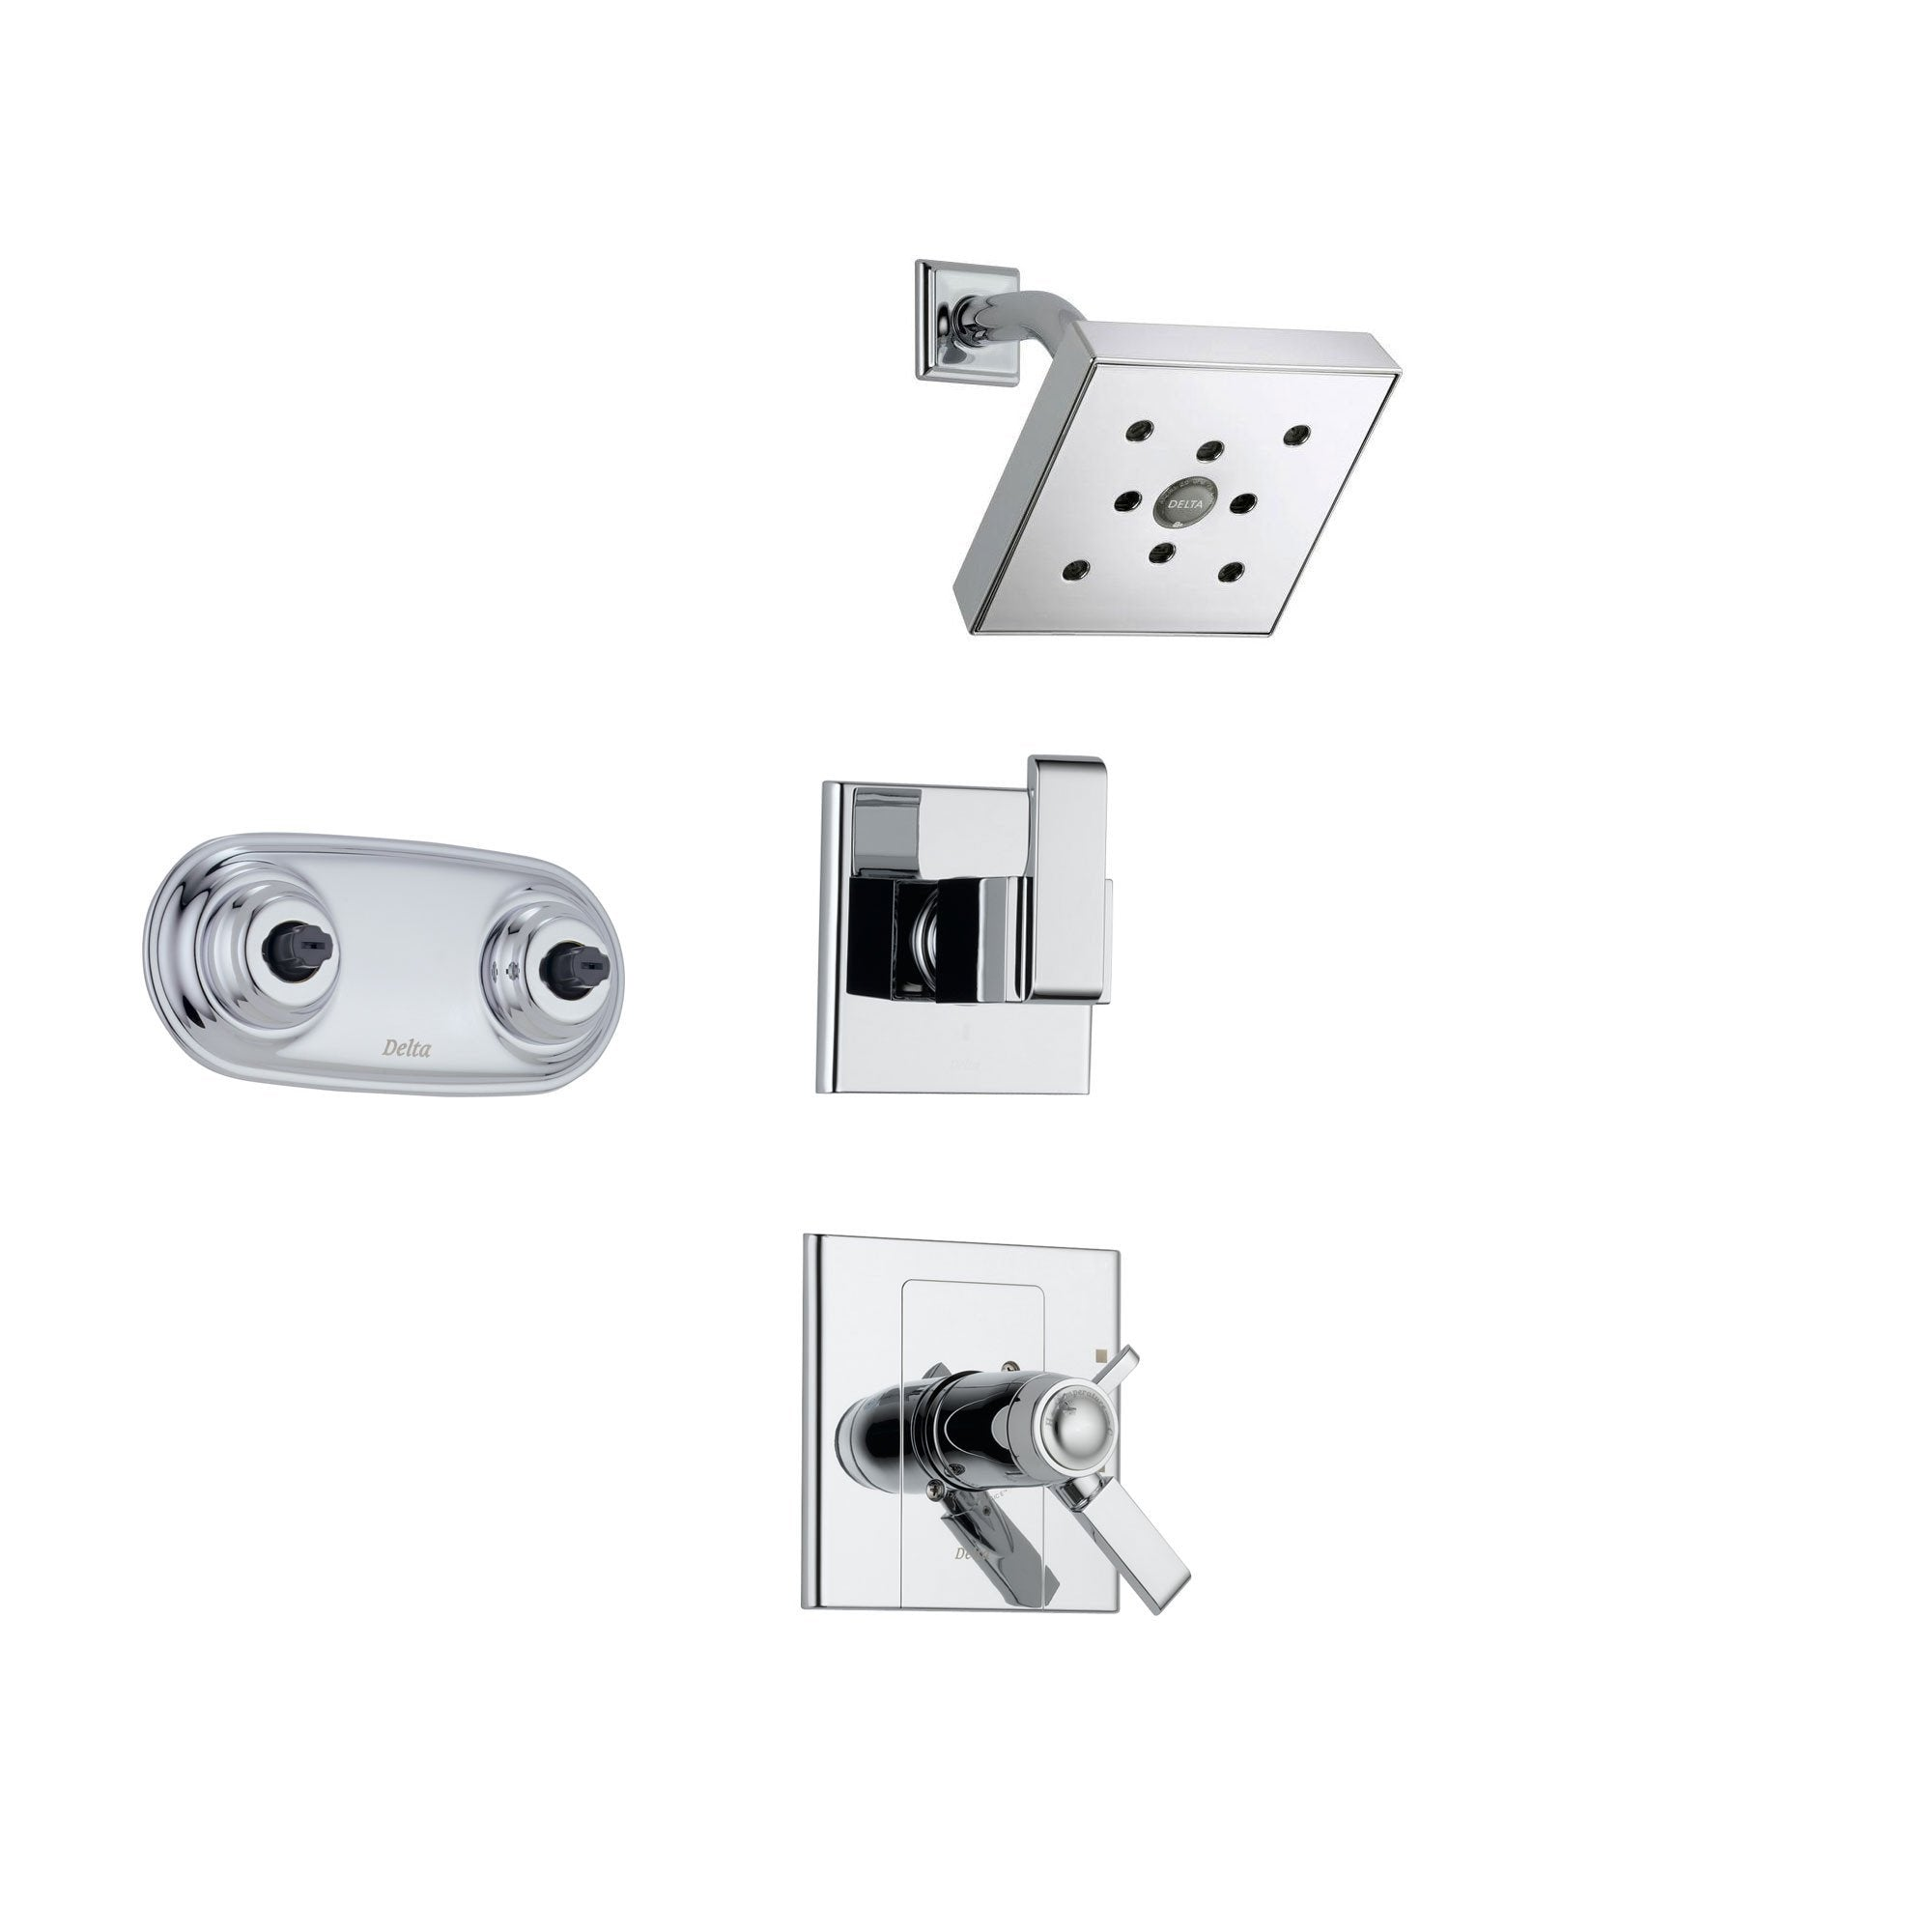 Delta Arzo Chrome Shower System with Thermostatic Shower Handle, 3-setting Diverter, Modern Square Showerhead, and Dual Body Spray Shower Plate SS17T8684